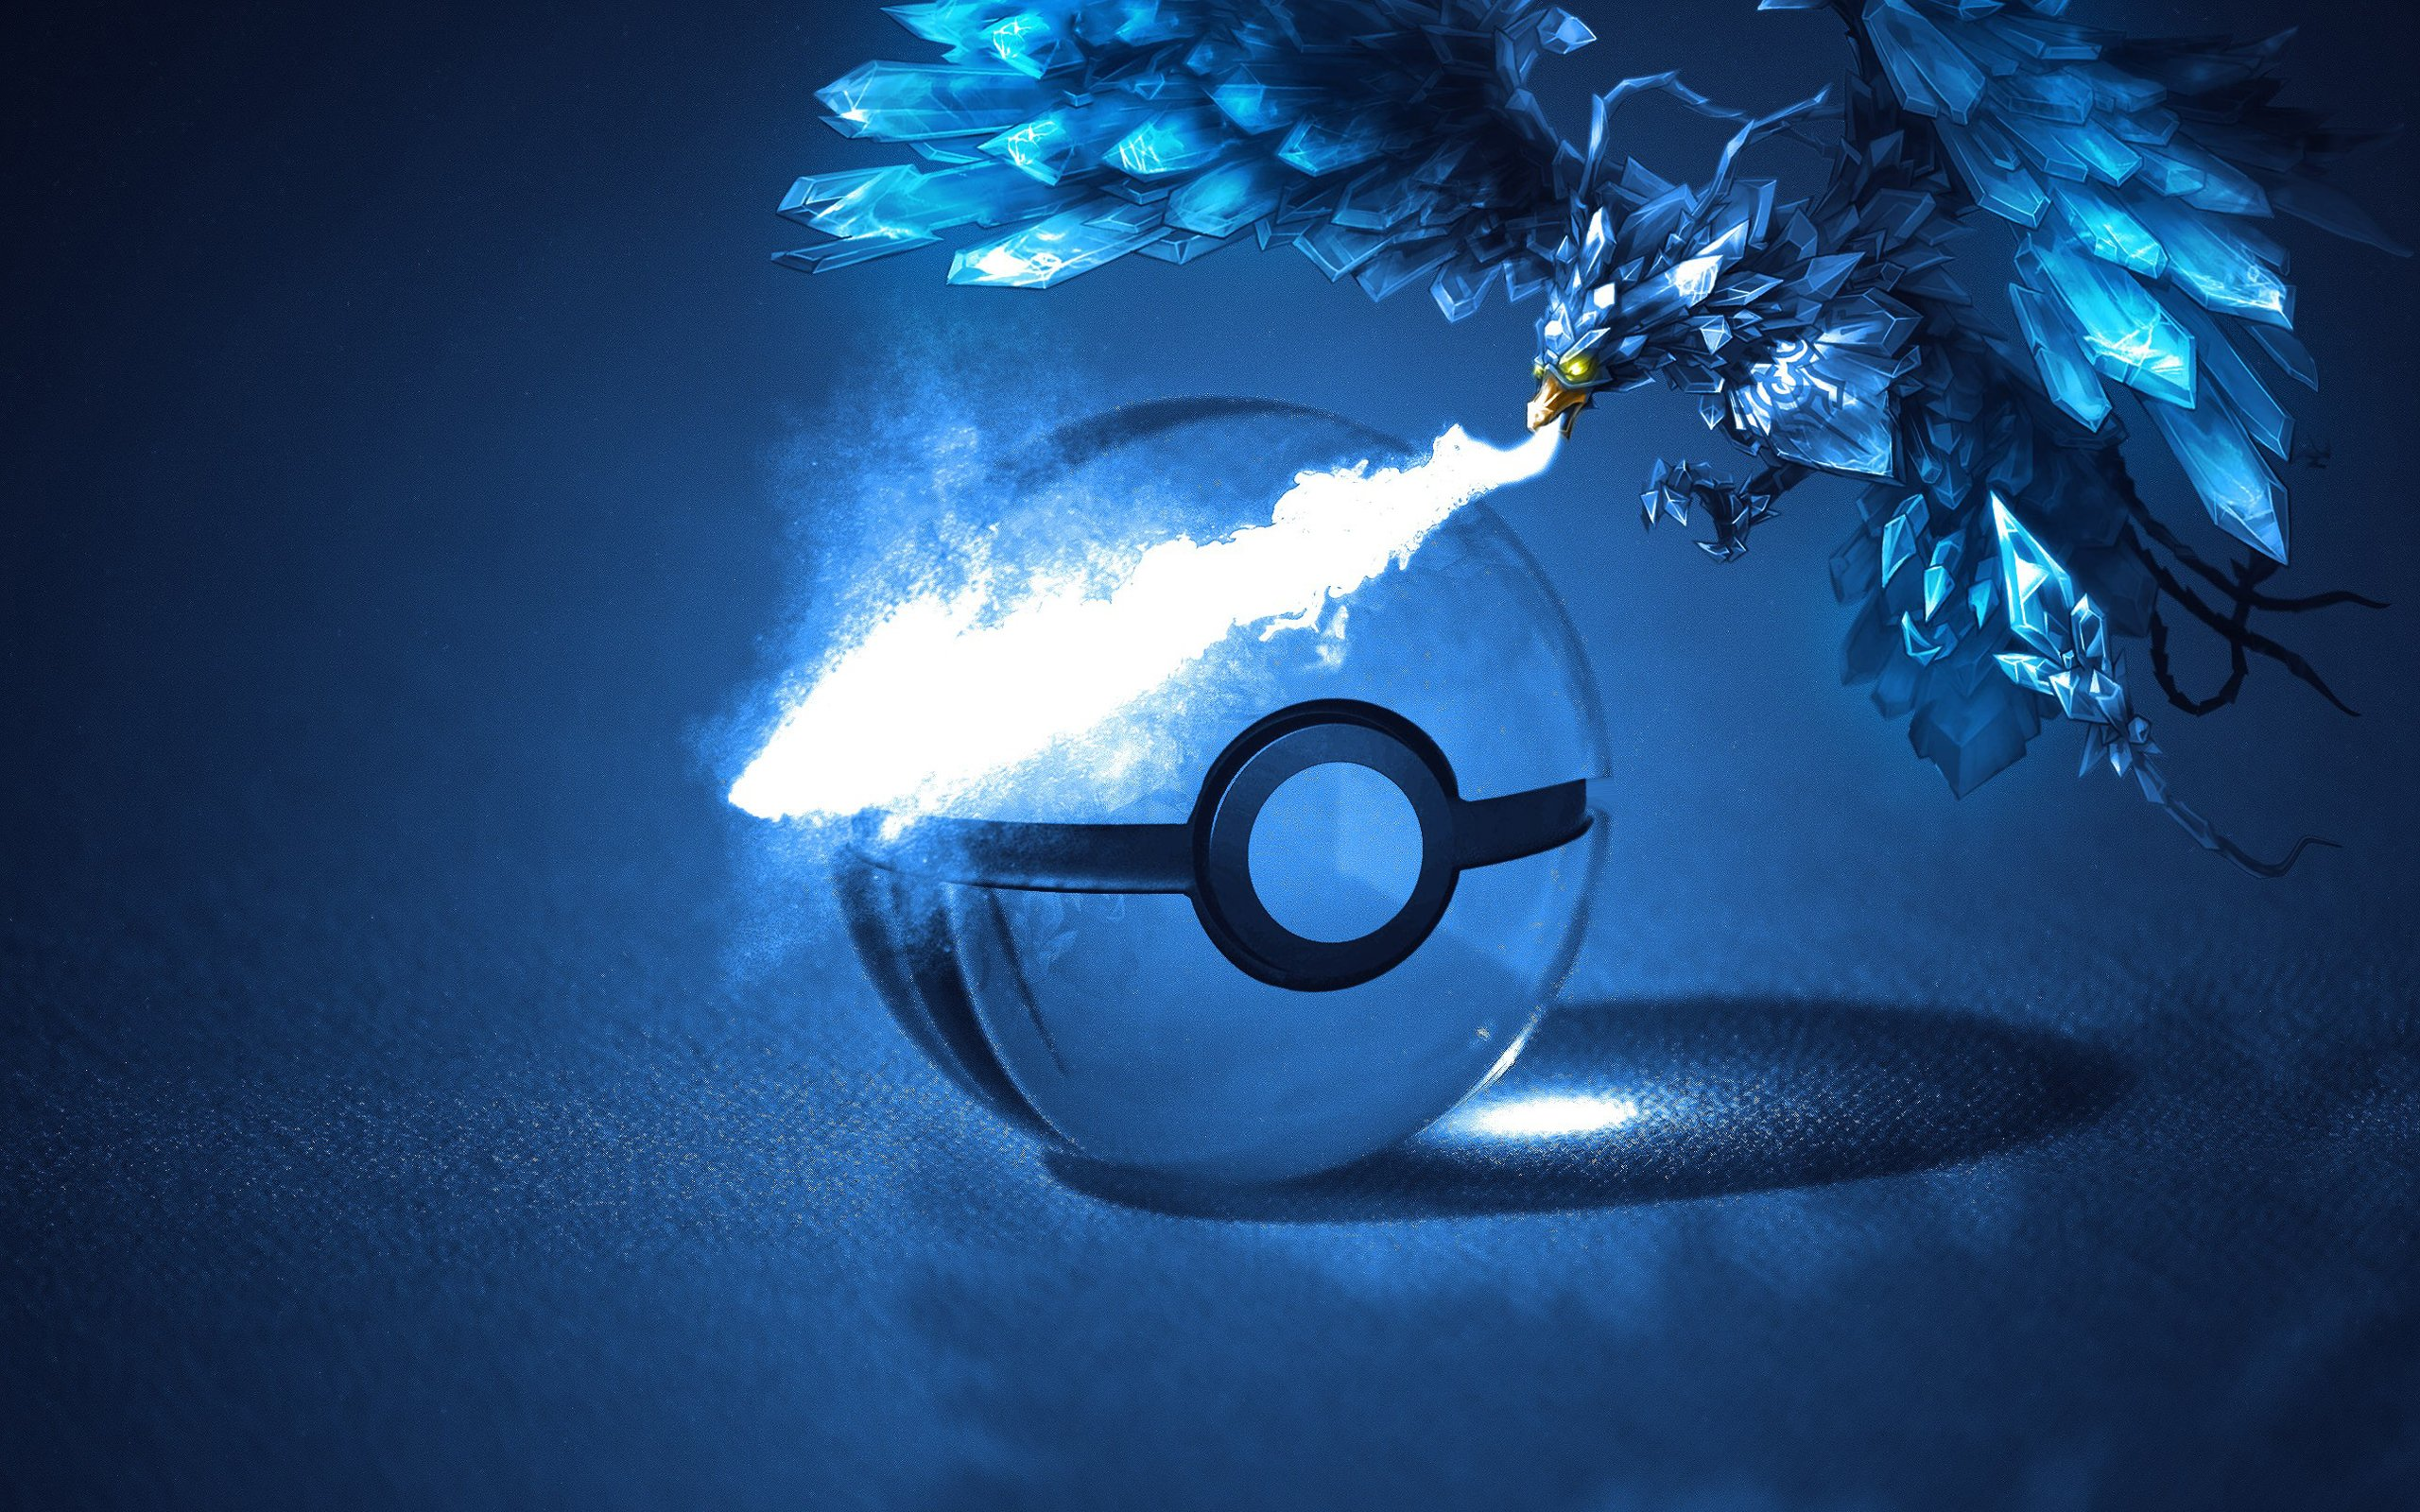 best pokemon go wallpaper   Tag Download HD Wallpaperhd 2560x1600